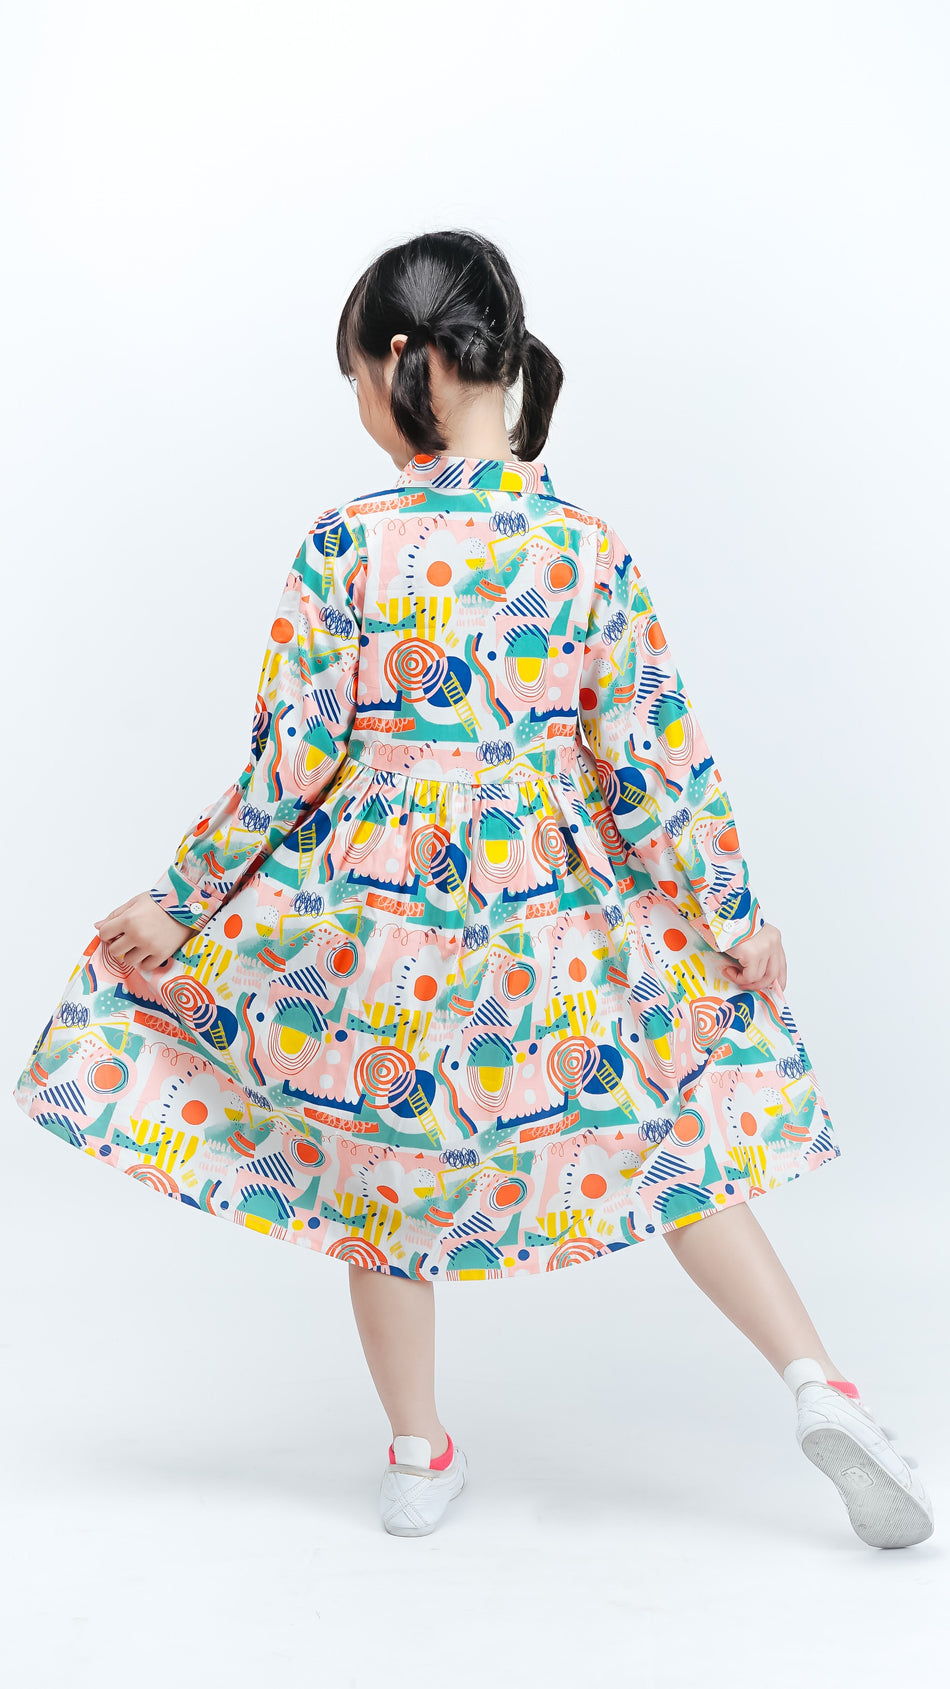 Ular Tangga Kids Dress - LuckyCla